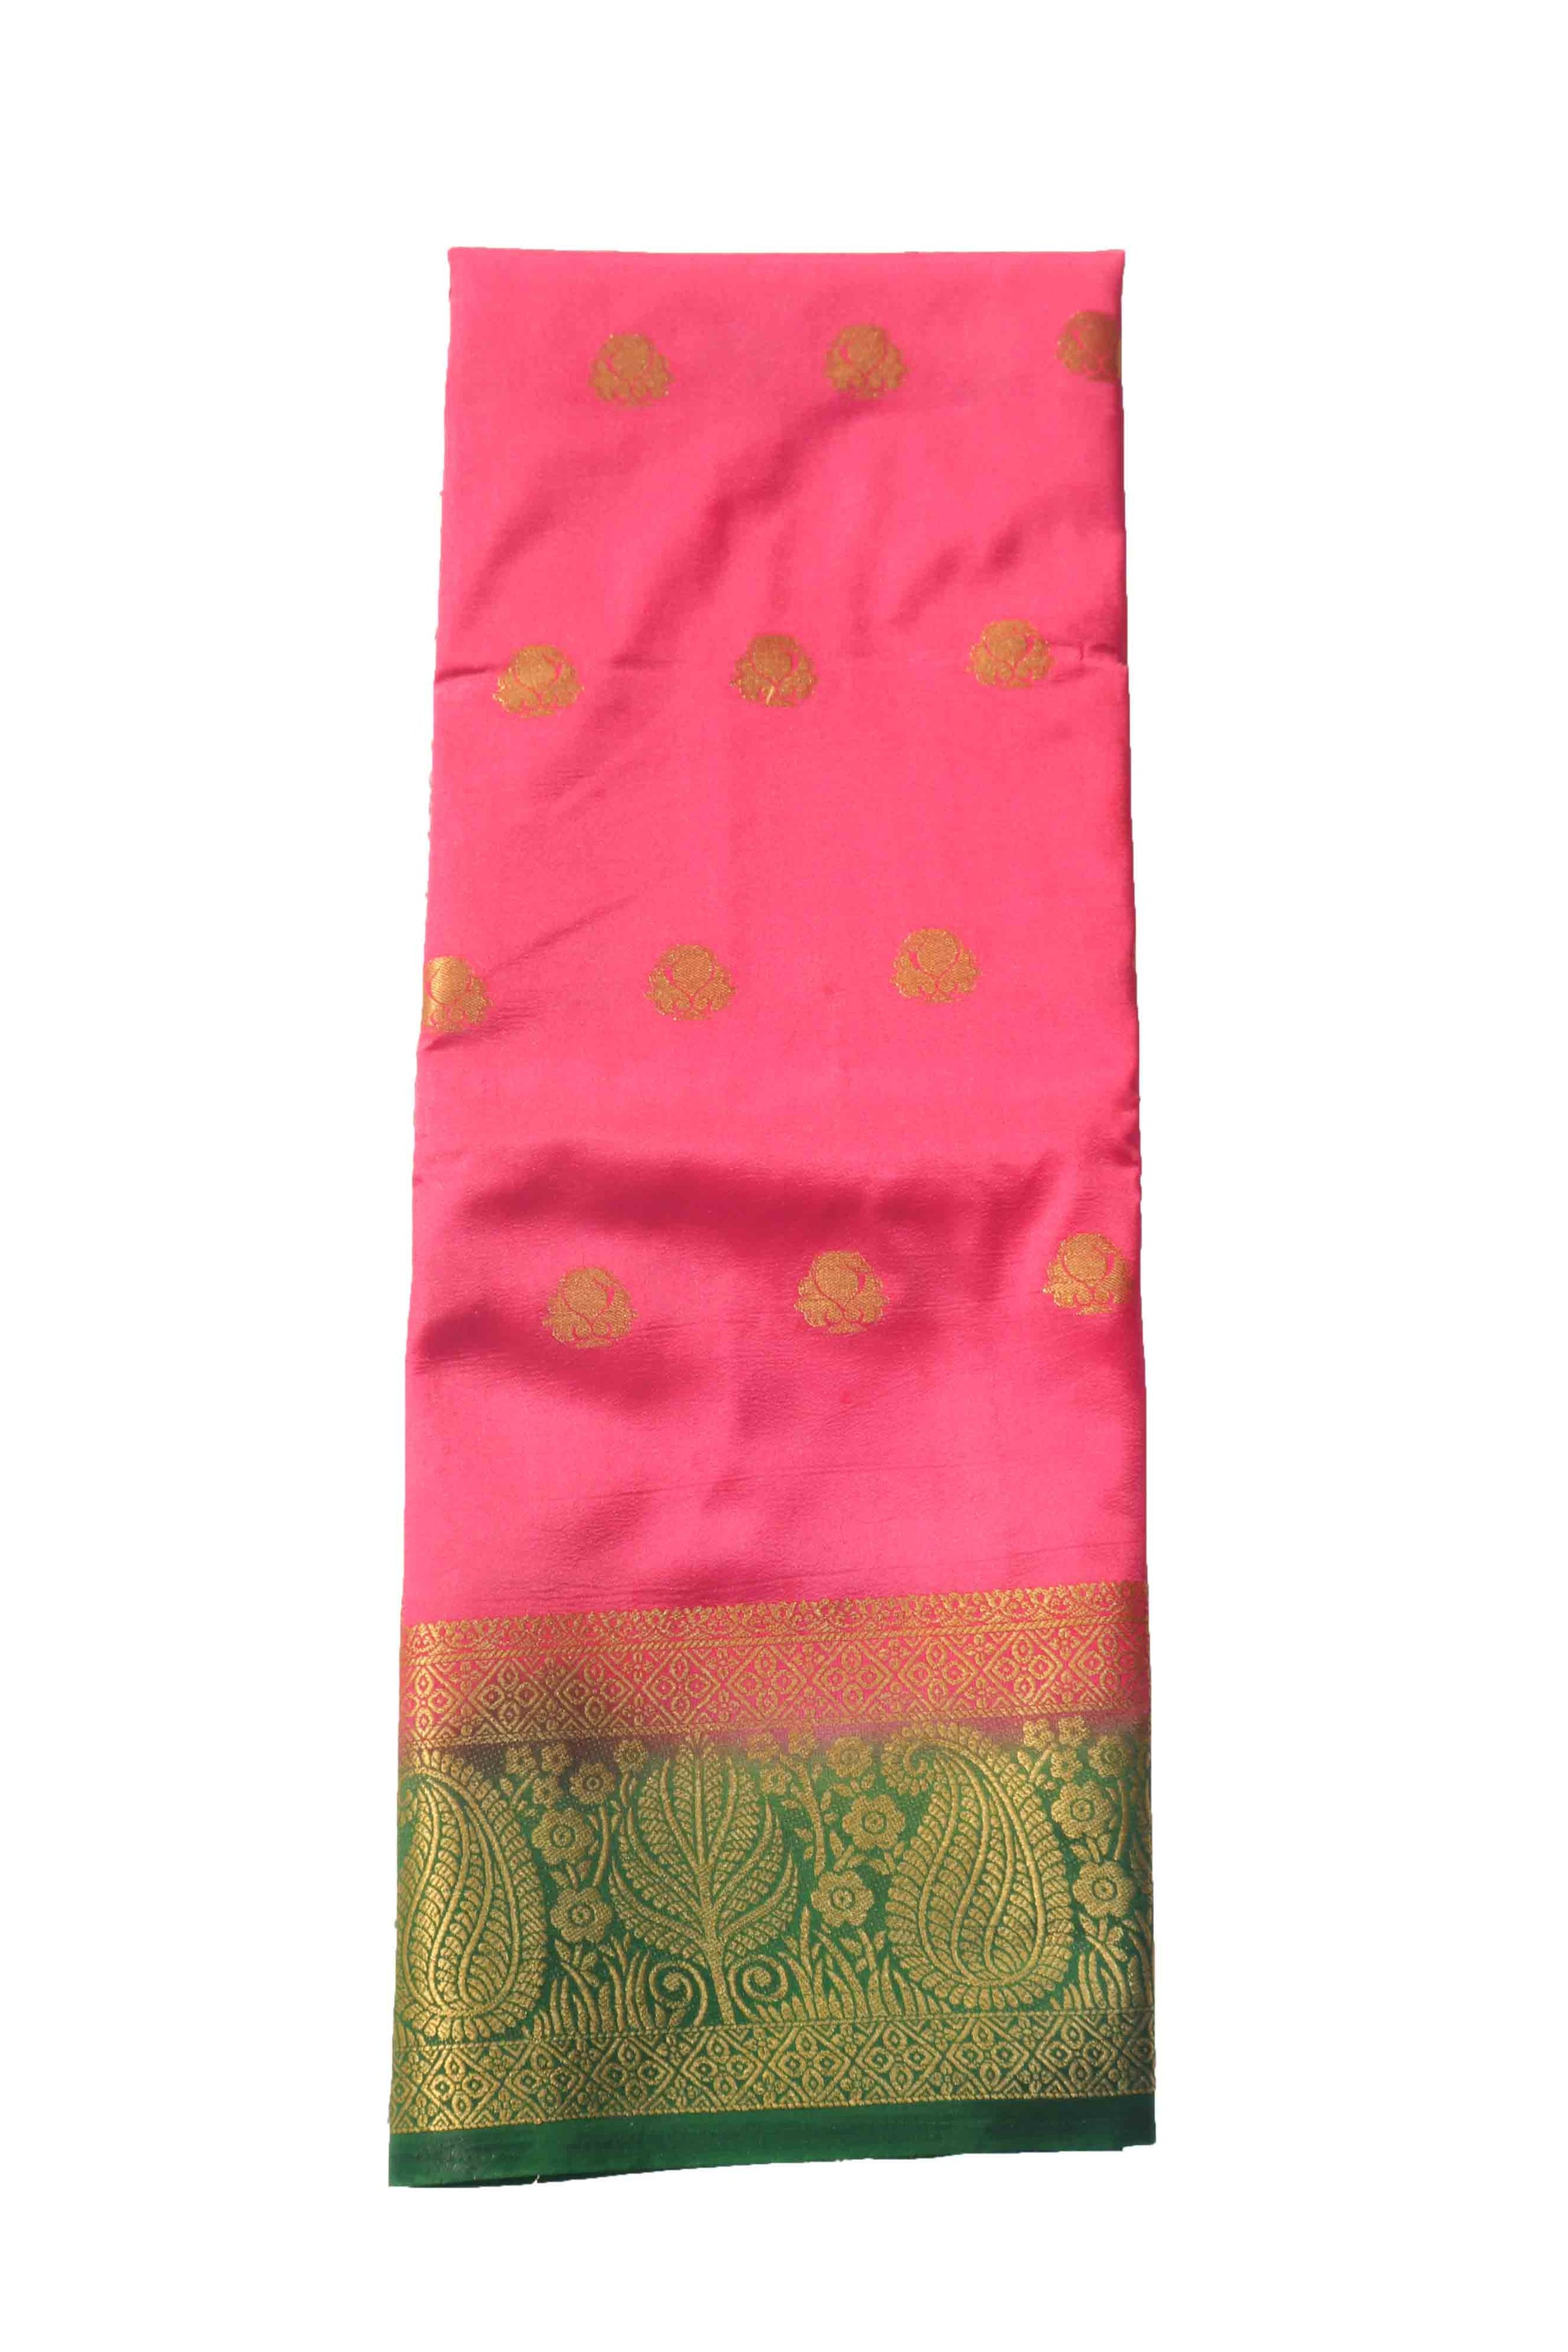 arars Women's Kanchipuram Pattu Banarasi Silk Saree With Blouse (551_strawberry_green )